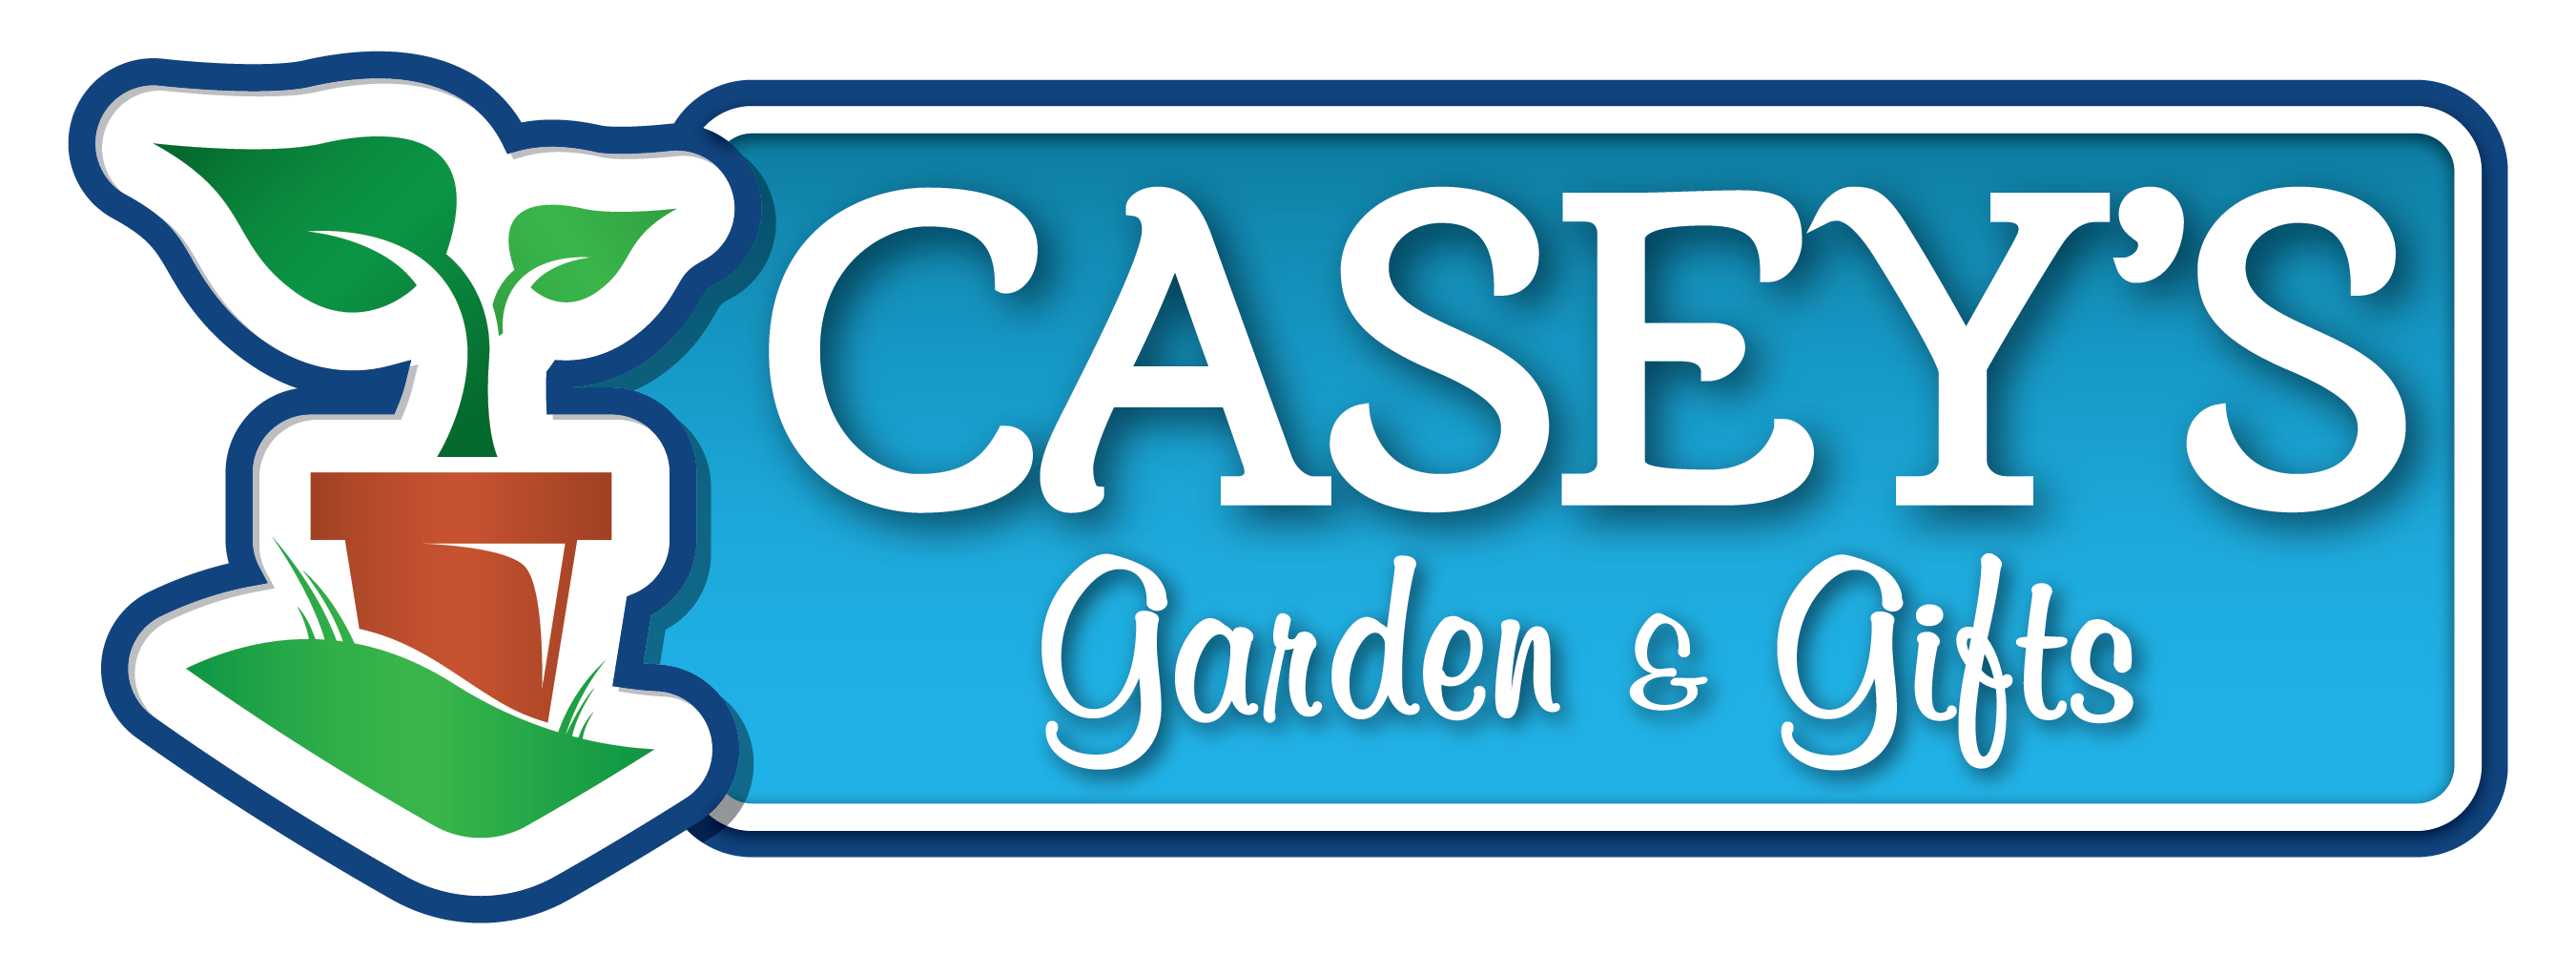 Casey's Outdoor Solutions Garden & Gifts